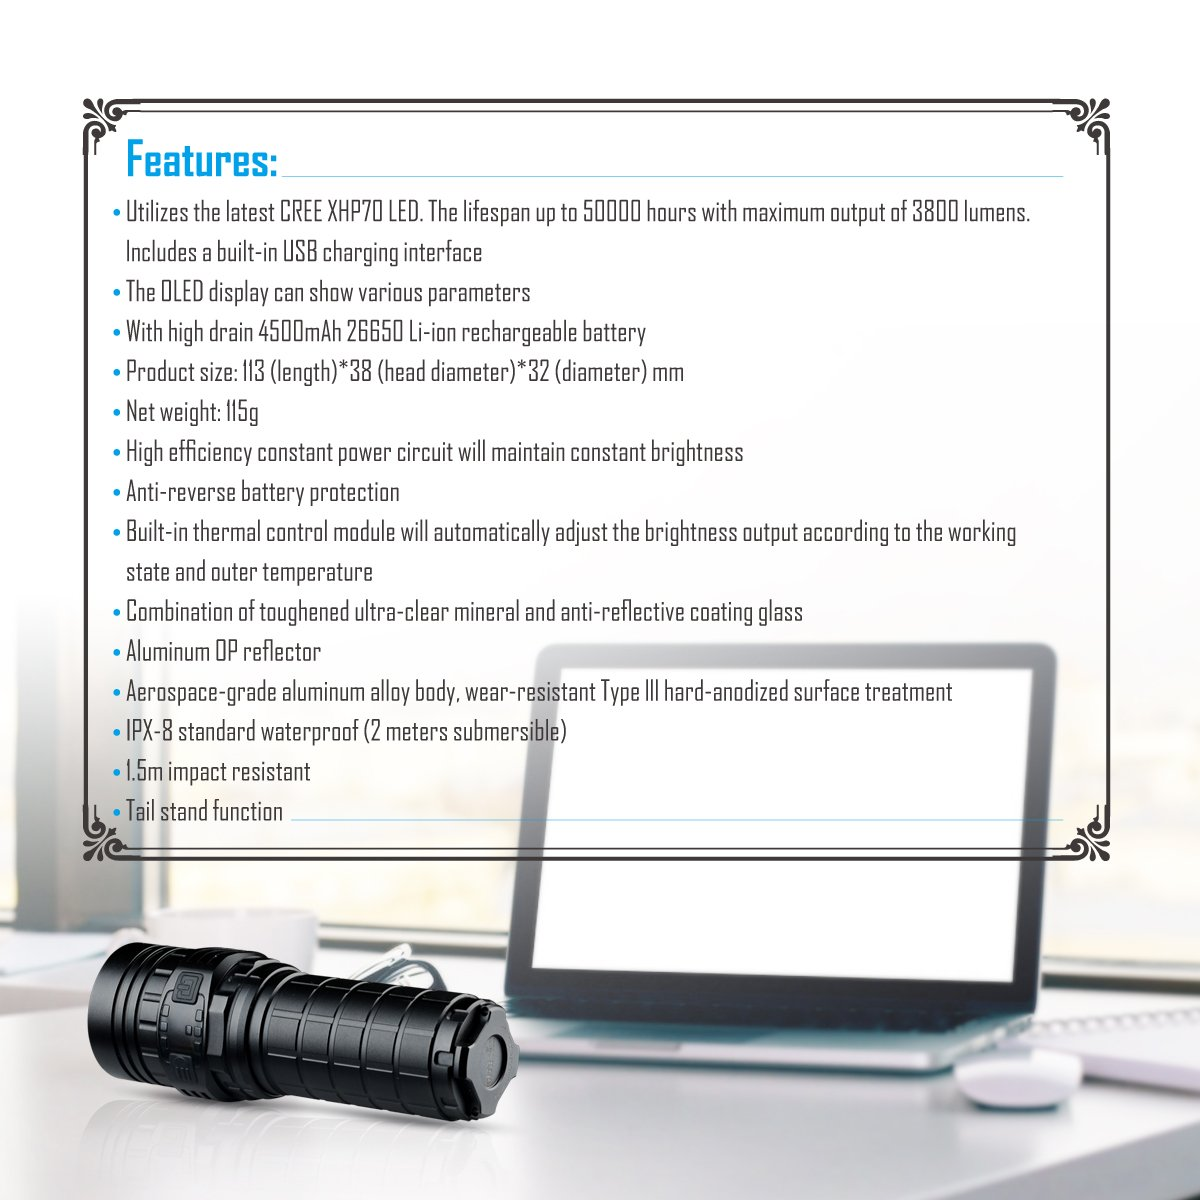 Imalent new DN70 USB rechargeable palm-sized LED flashlight 3800lumens searching light portable floody flashlight with CREE XHP70 LED by IMALENT (Image #7)